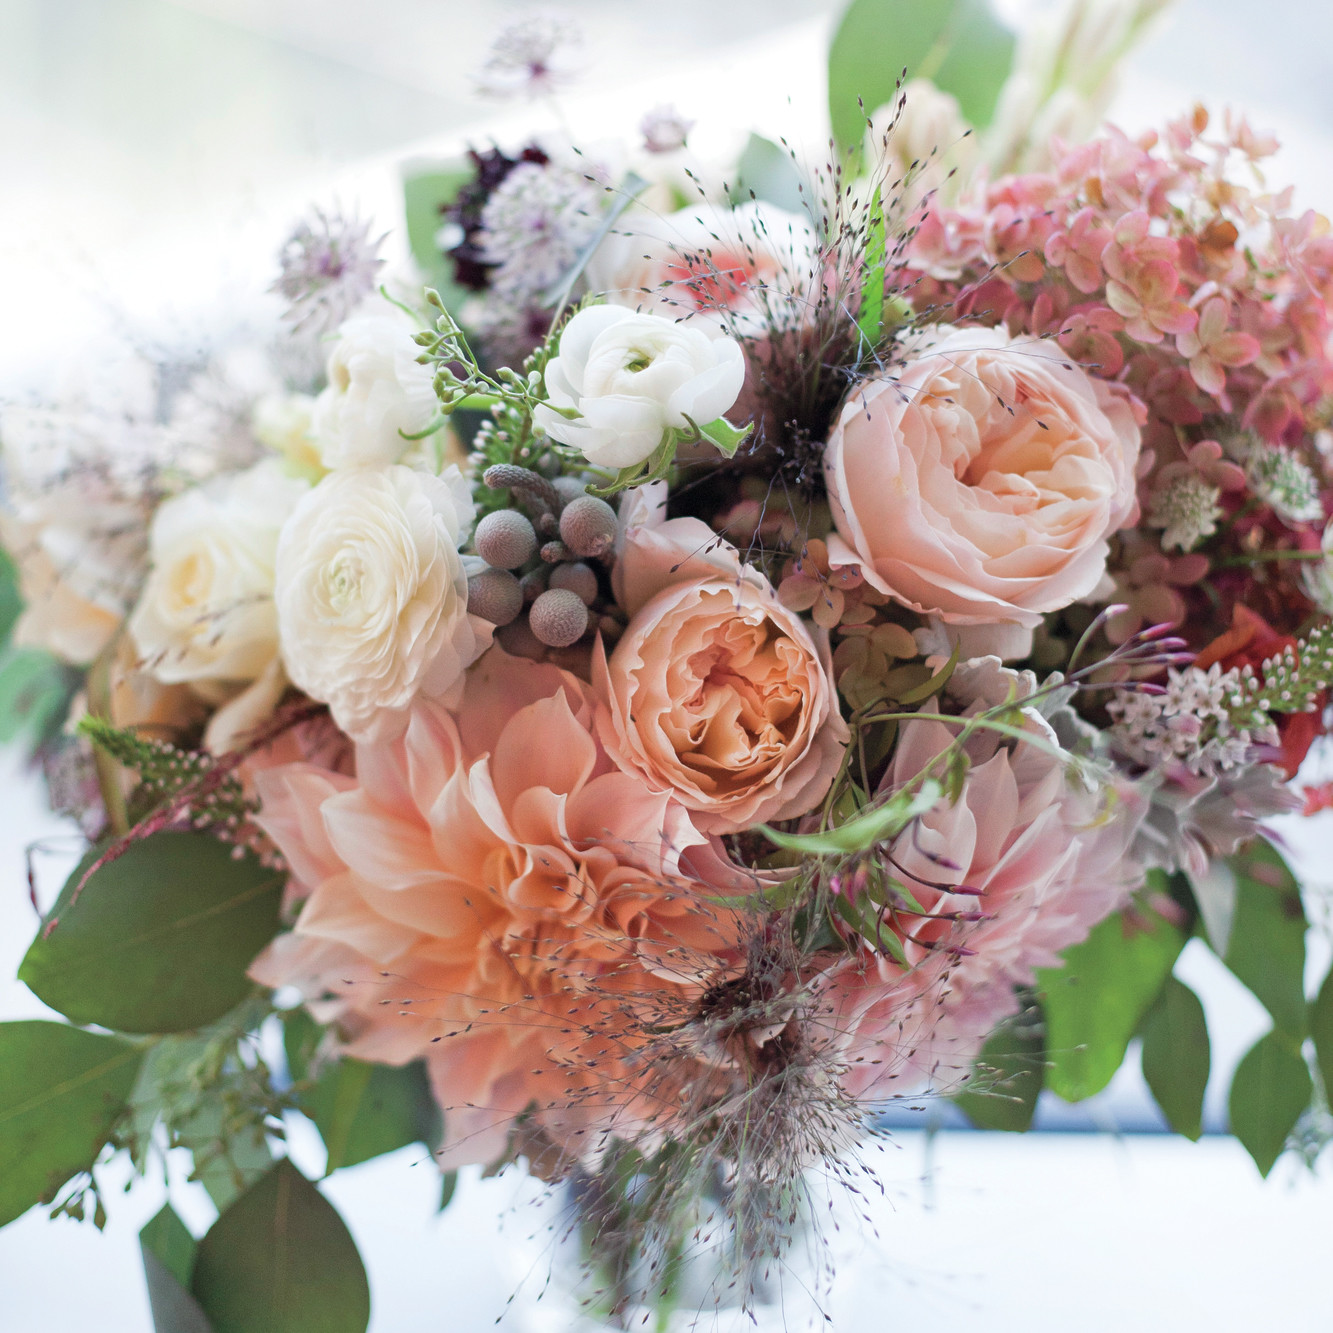 Wedding Bridal Flowers: Classic Wedding Bouquets